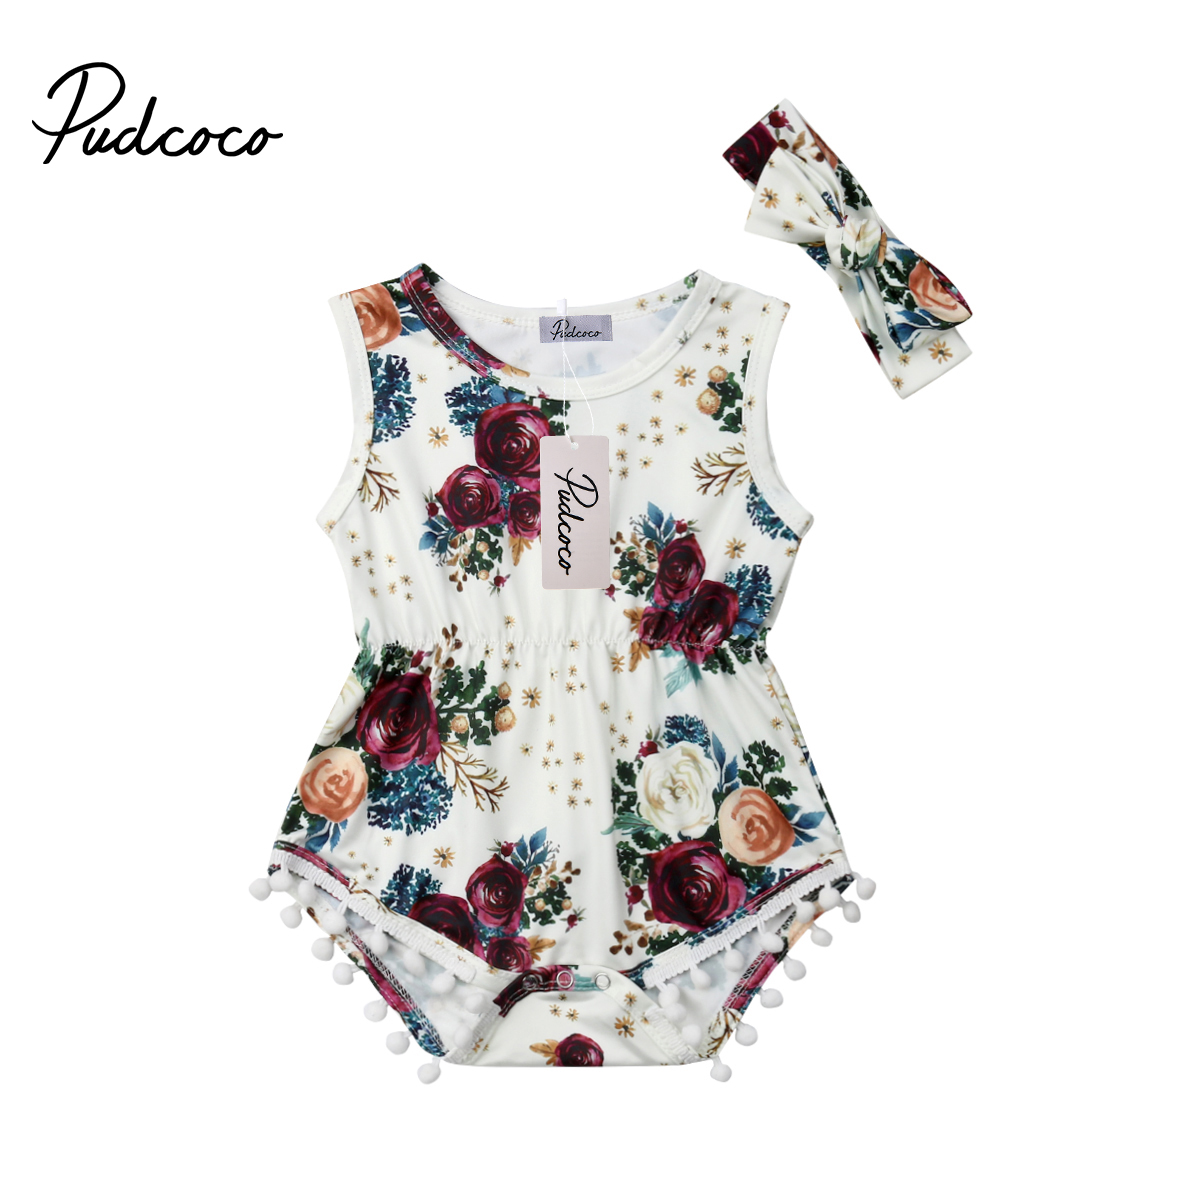 US Kids Baby Girl Jumpsuit Sleeveless Floral Romper  Bodysuit Outfit Clothes